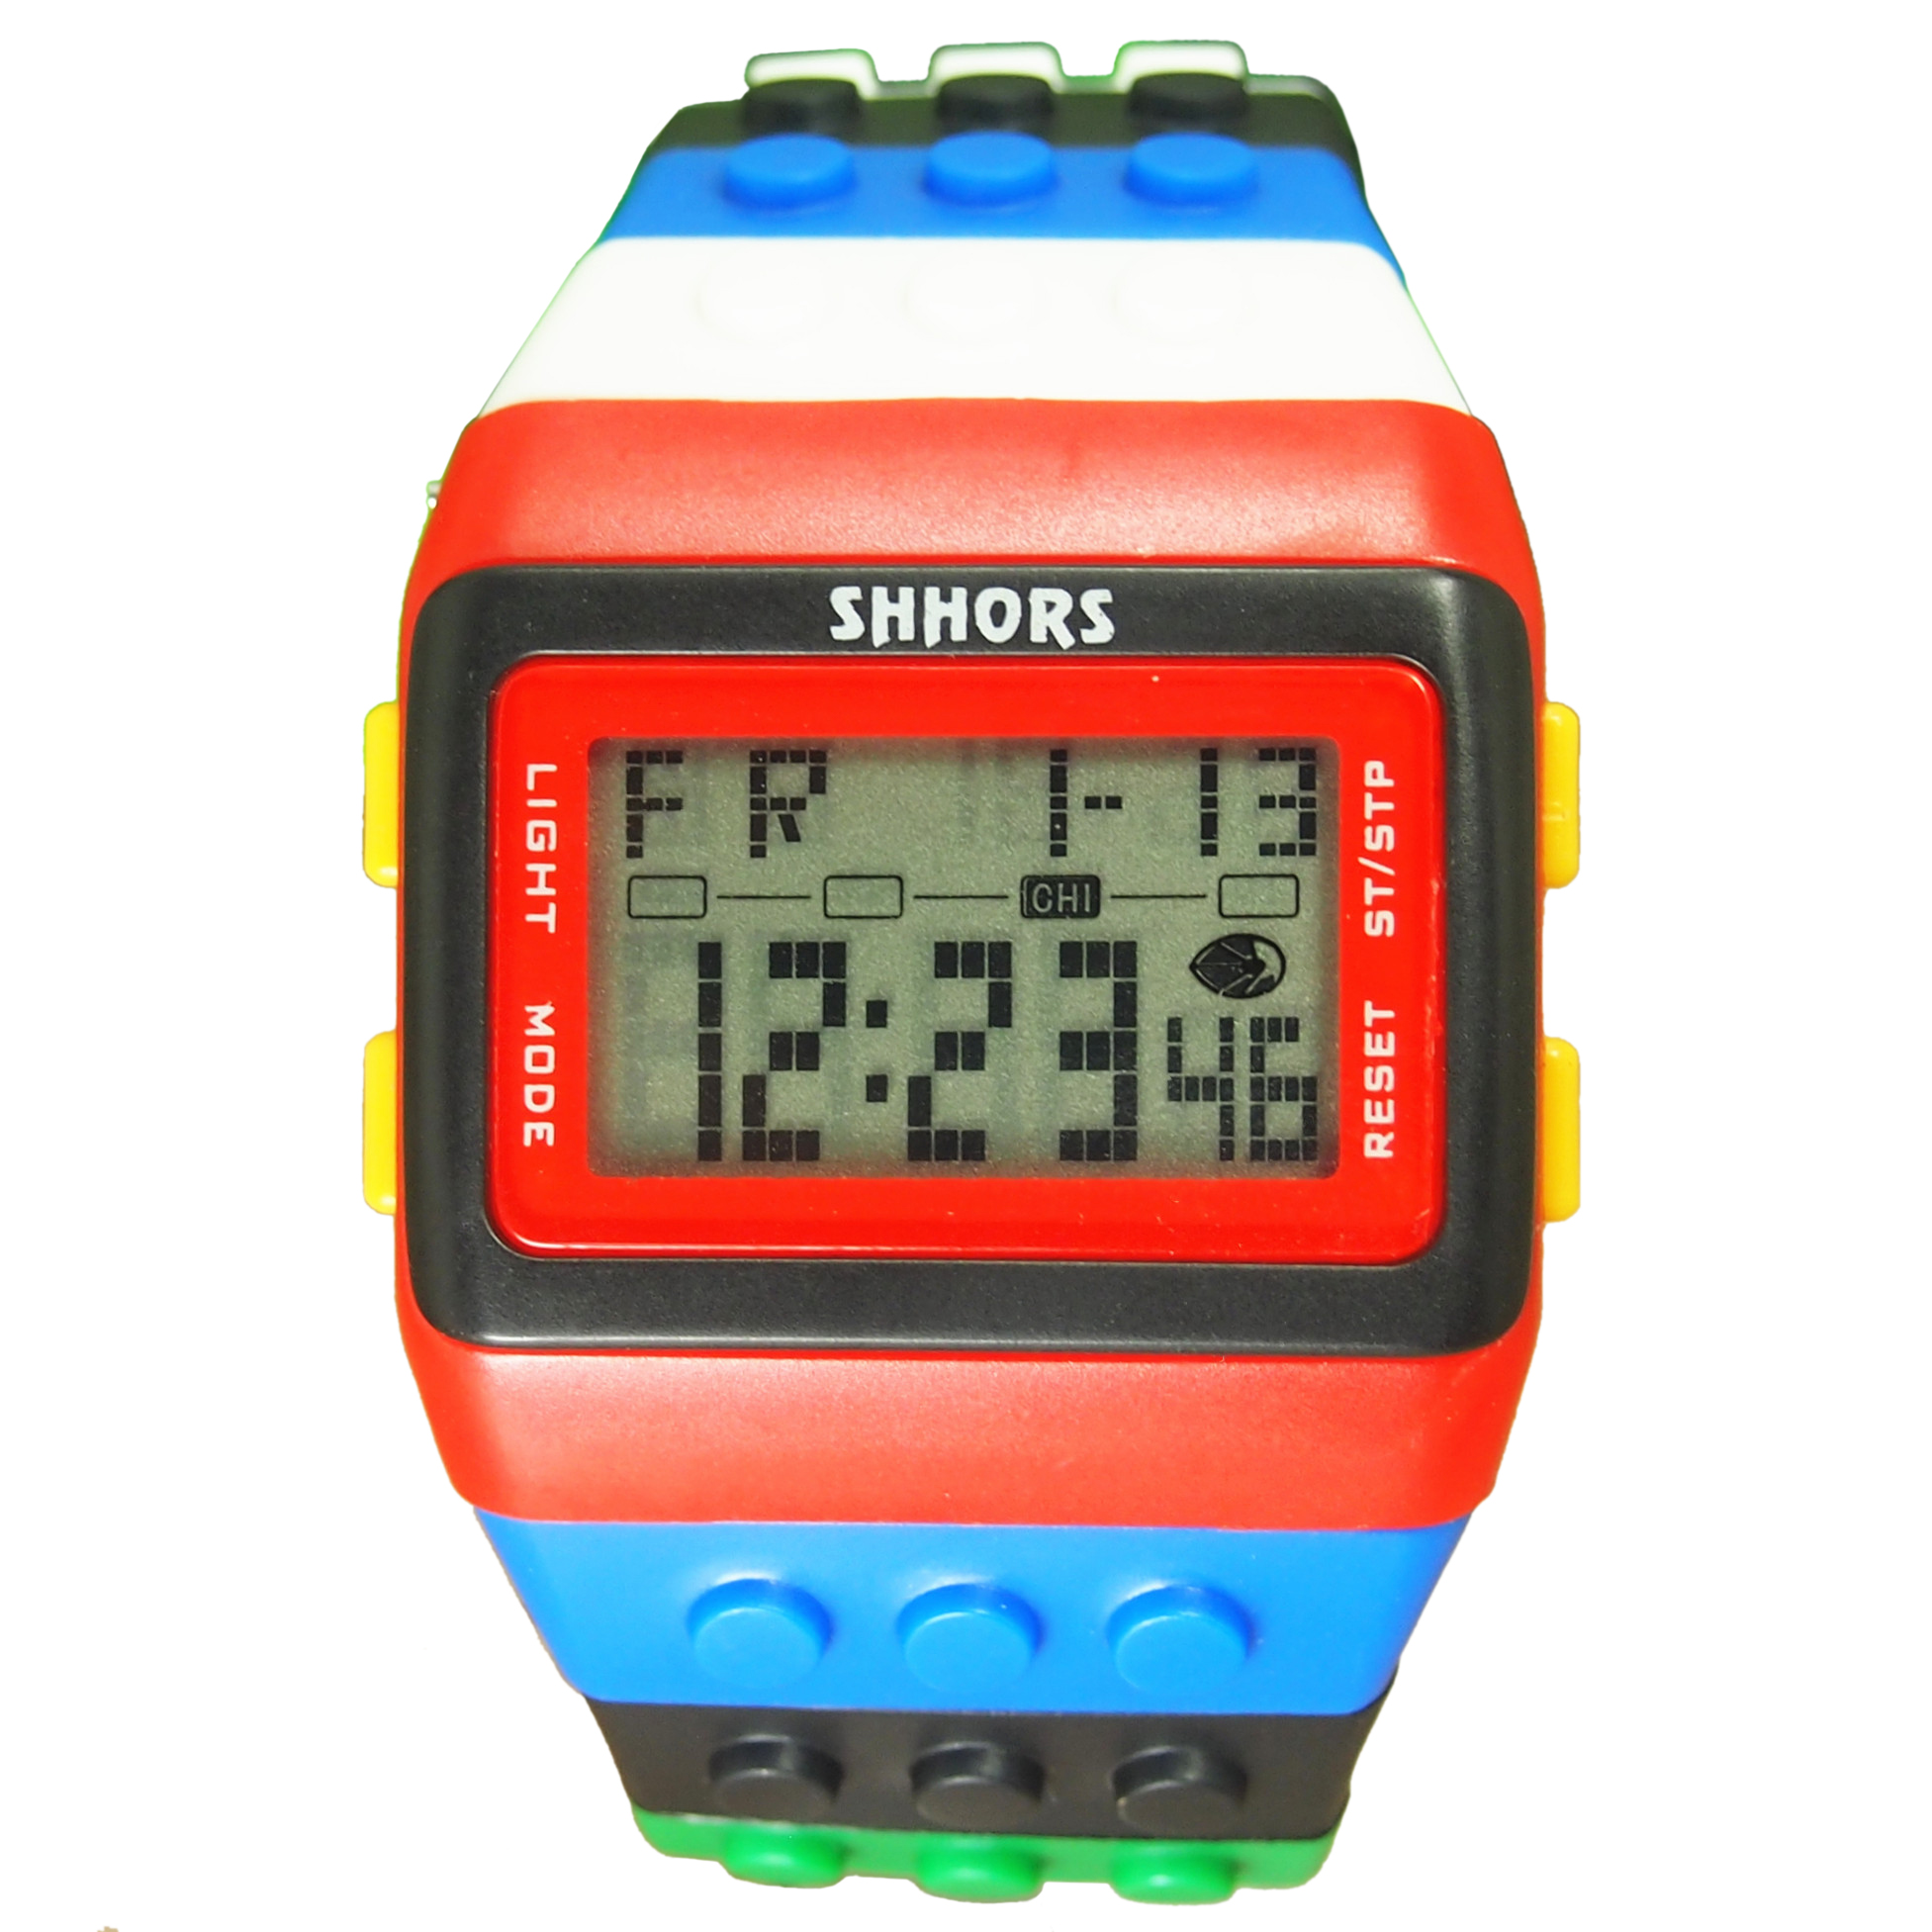 SHHORS Rainbow Color Multifunction Waterproof LED Children Wrist Watch Swimming Sports Watch Digital Wrist Watch (style 3) diray dr 306g children digital watch